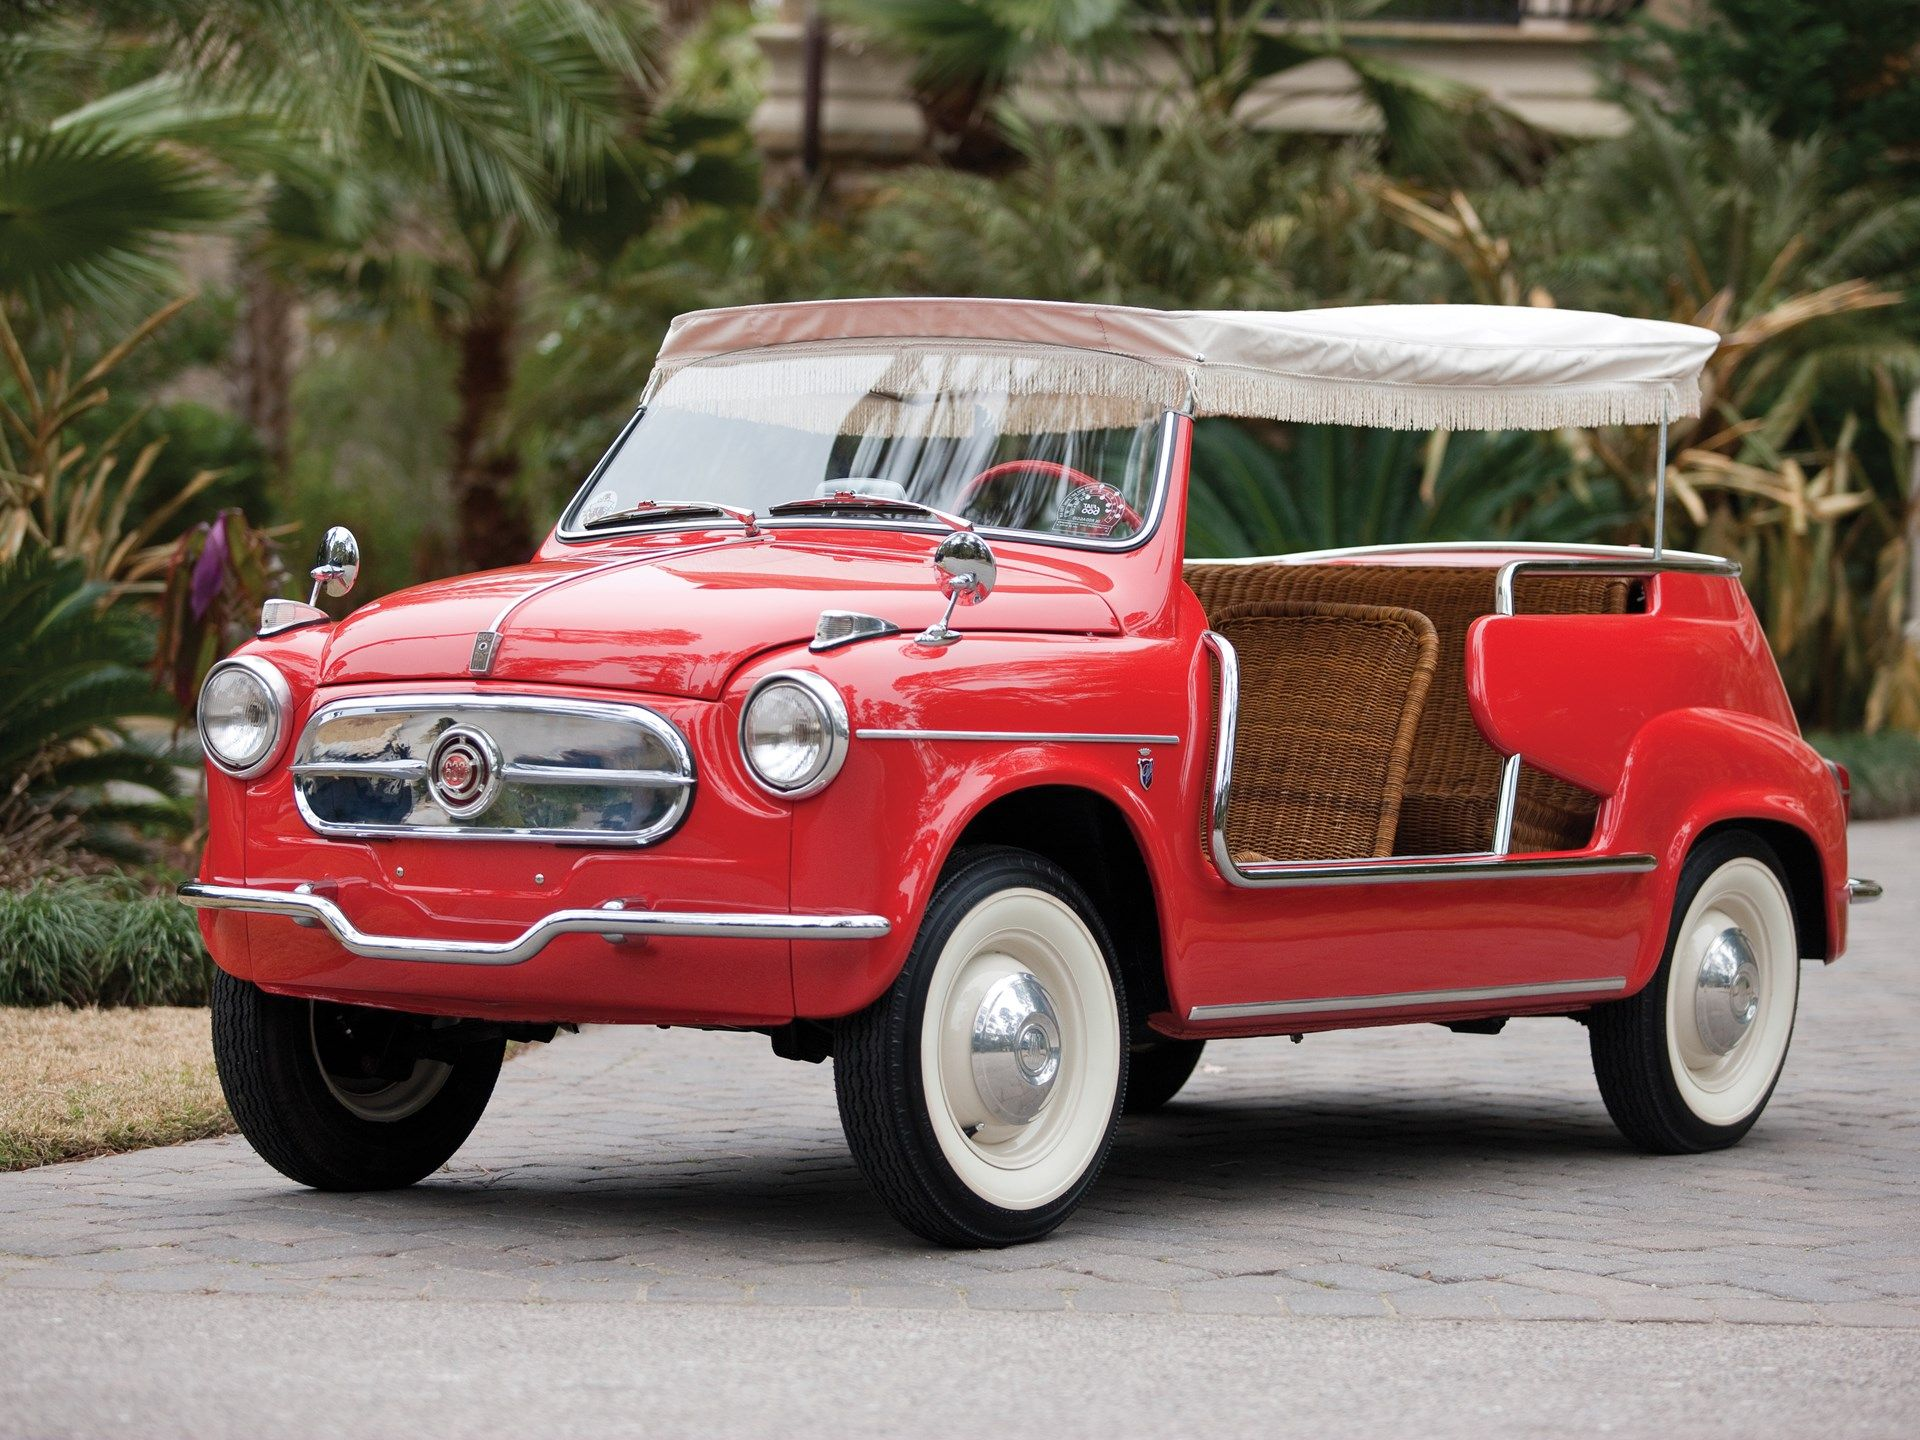 Car Crush The Fiat Jolly With Images Fiat 600 Fiat Car